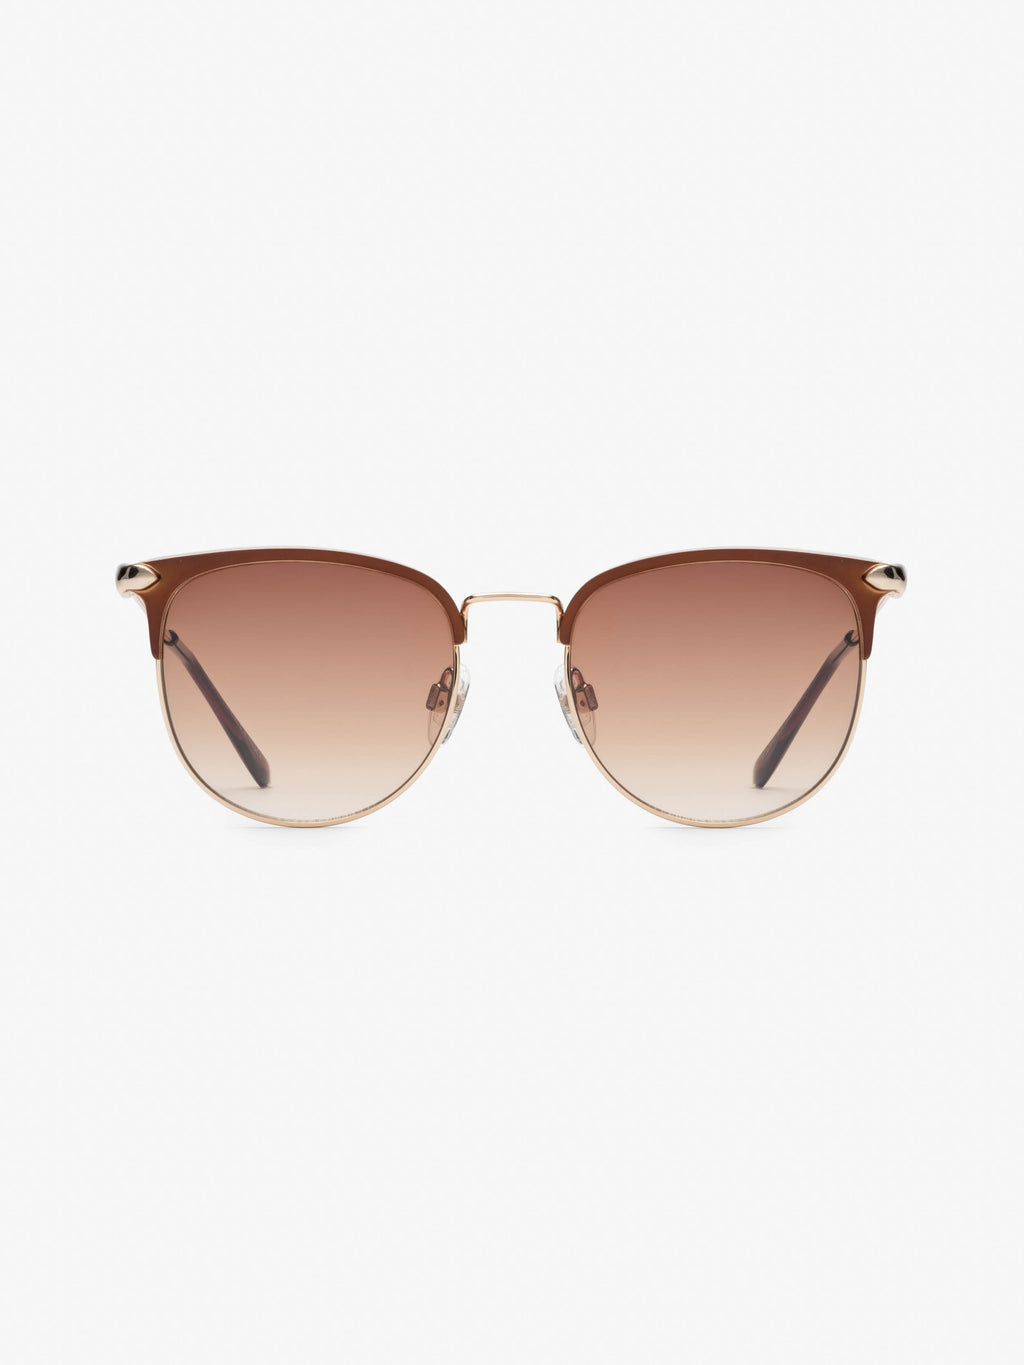 Troy - Matte Dark Coffee/Light Gold - Image 1